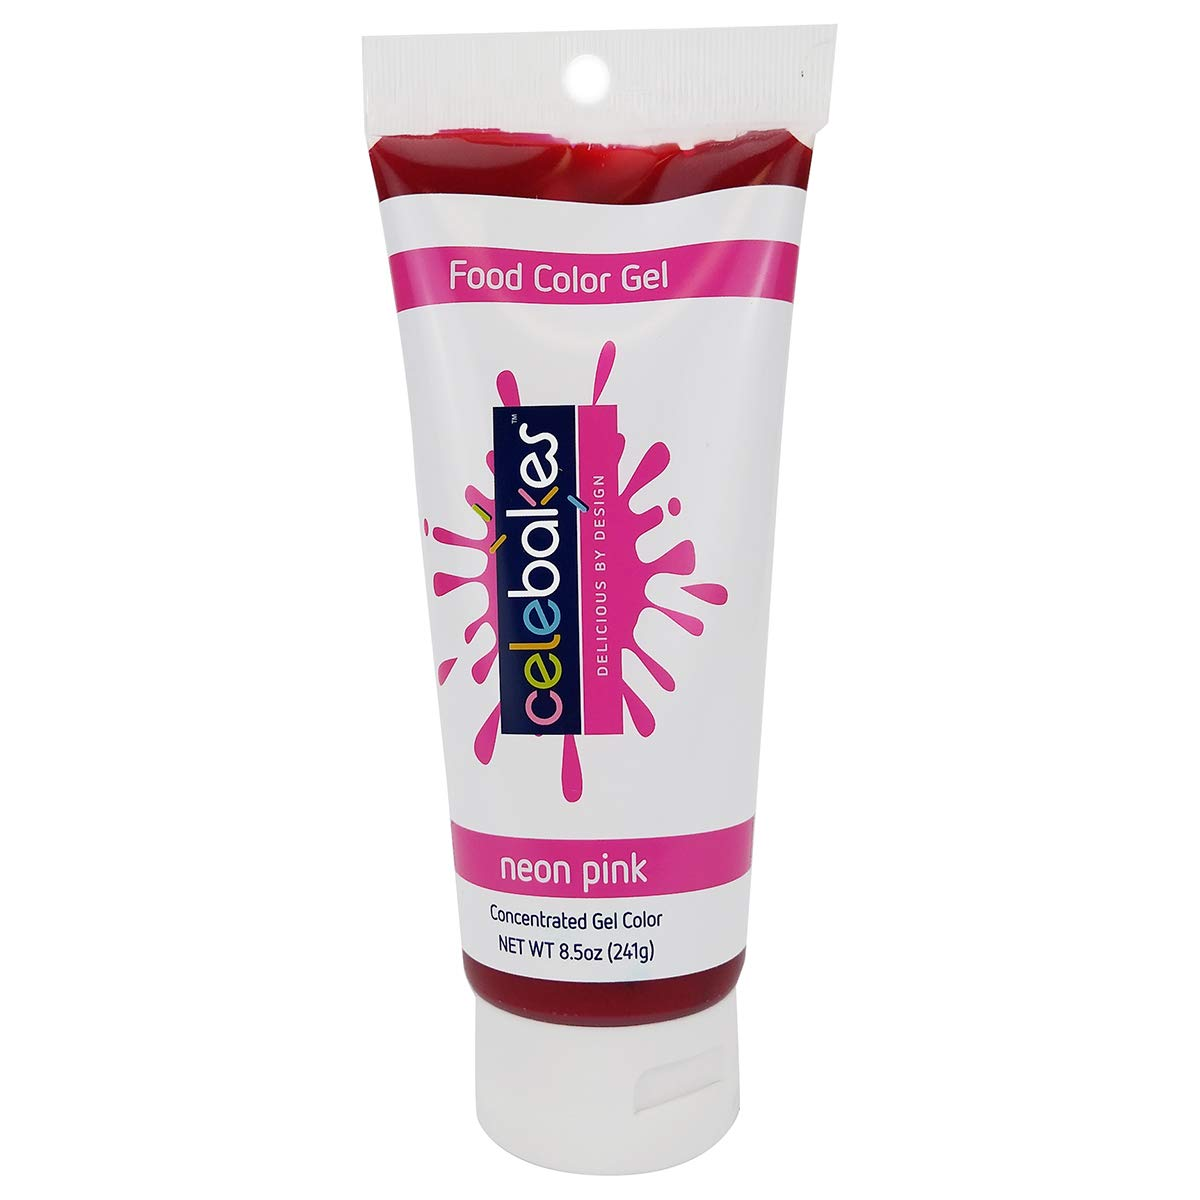 Celebakes by CK Products Neon Pink Food Color Gel, 8.5 oz Tube